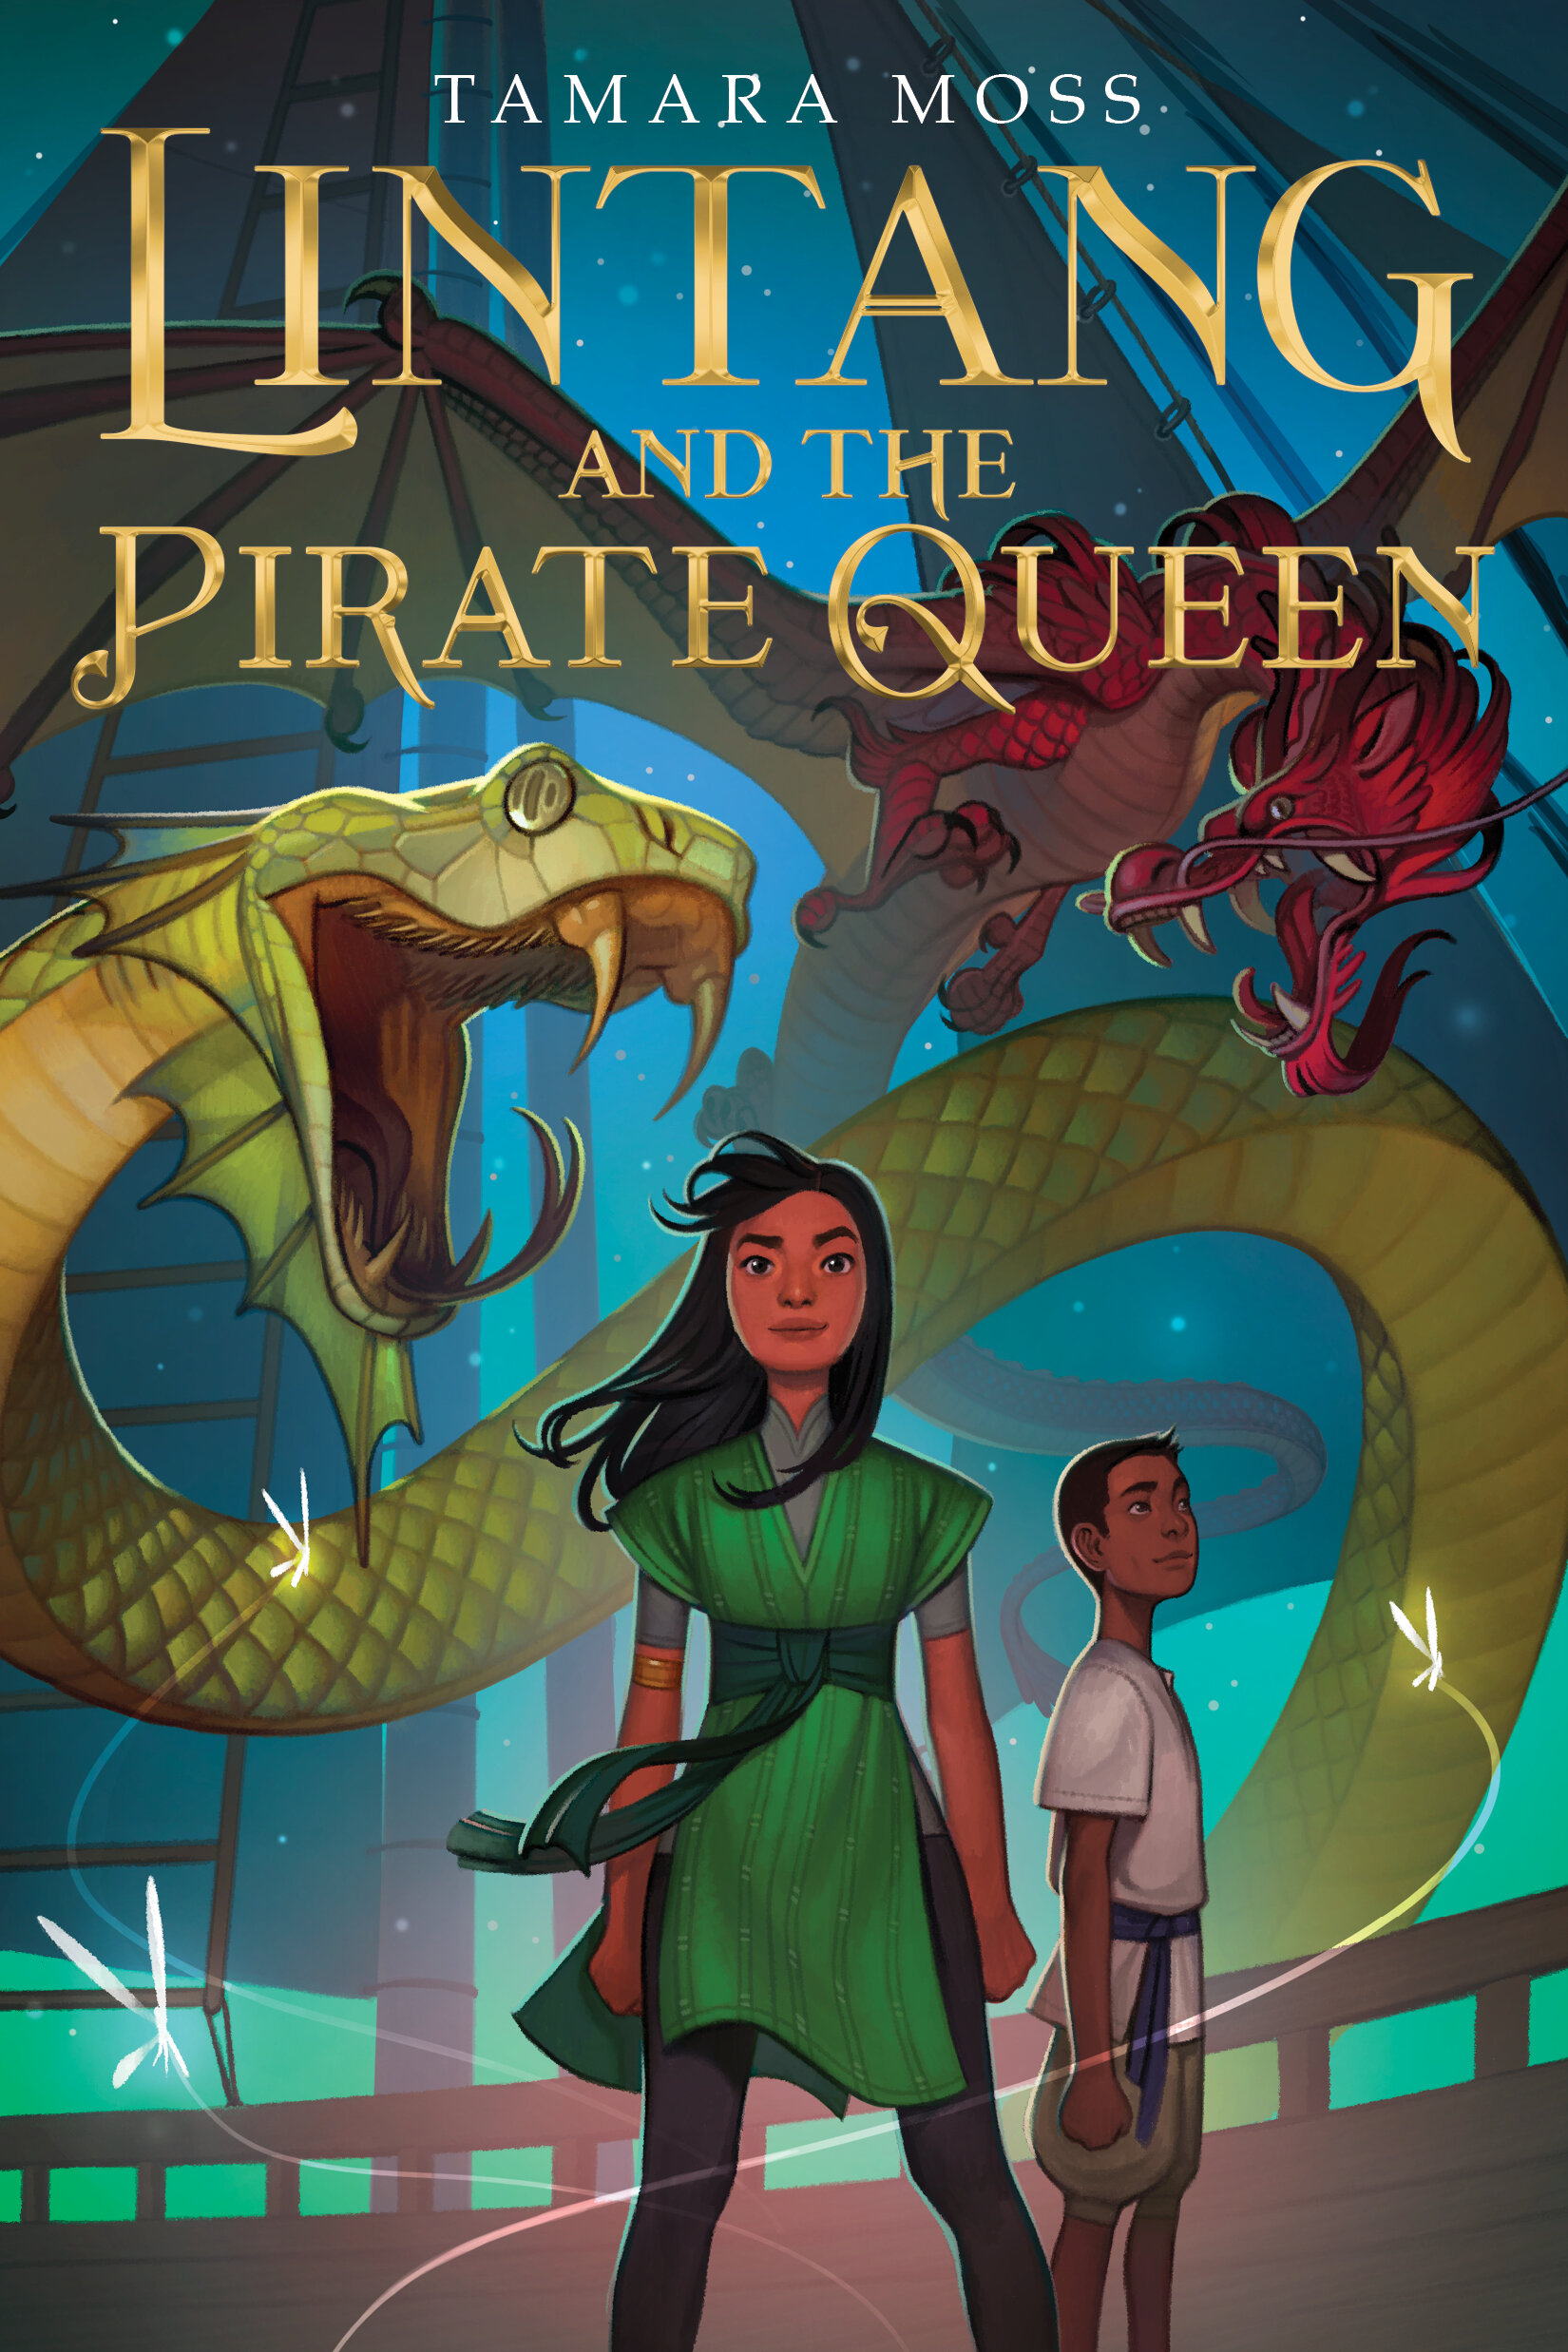 Lintang and the Pirate Queen - Out now in the US!